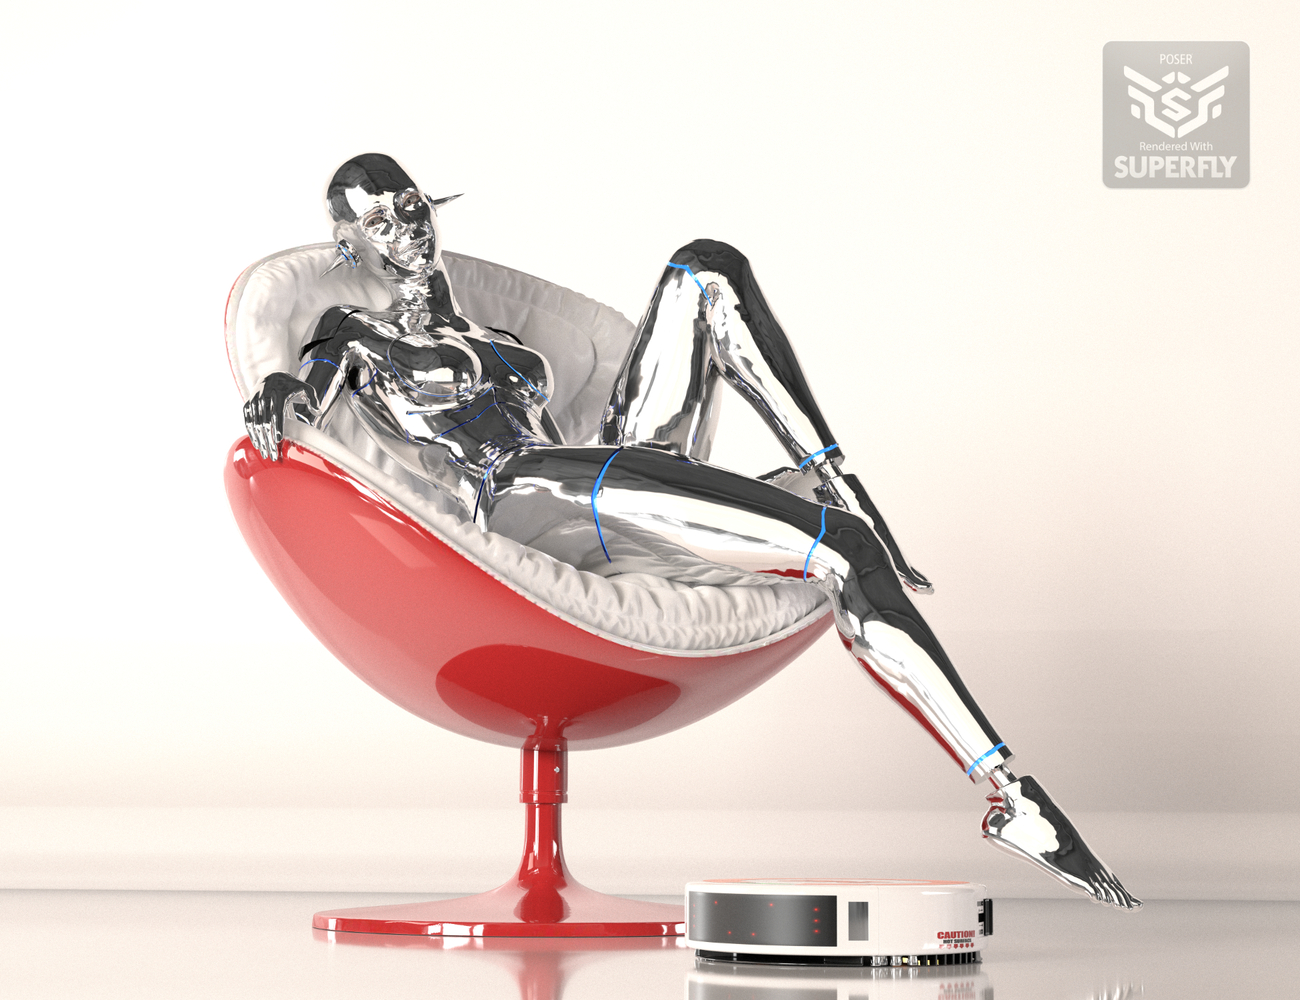 Sexy Robot 04 - for Alain by NobbyC